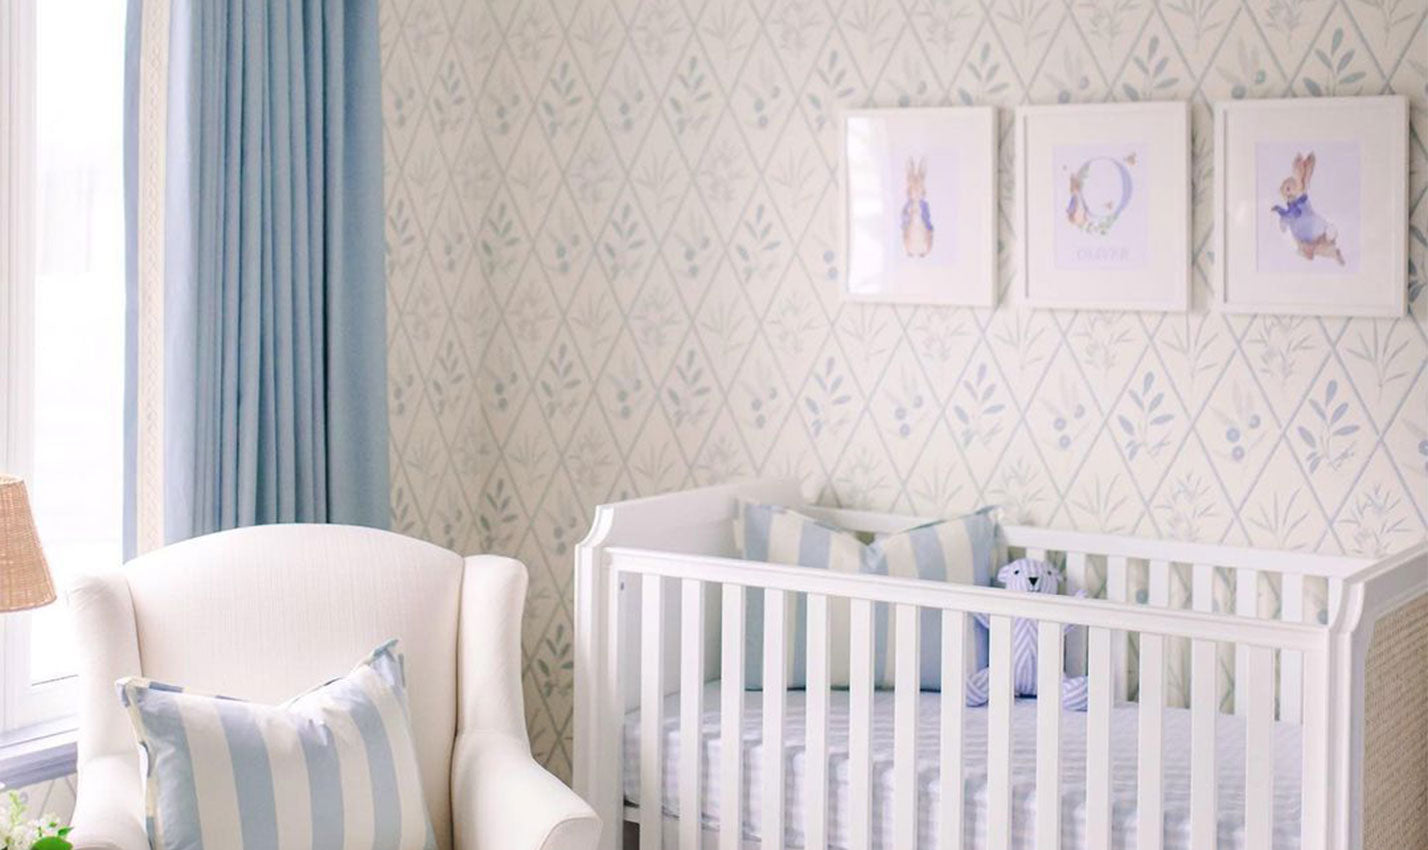 A pale blue nursery with patterned white and blue wallpaper/Courtesy of Clary Bosbyshell/Another soothing space by Atlanta-based designer Clary Bosbyshell harnesses the gentle strength of pale blue hues.